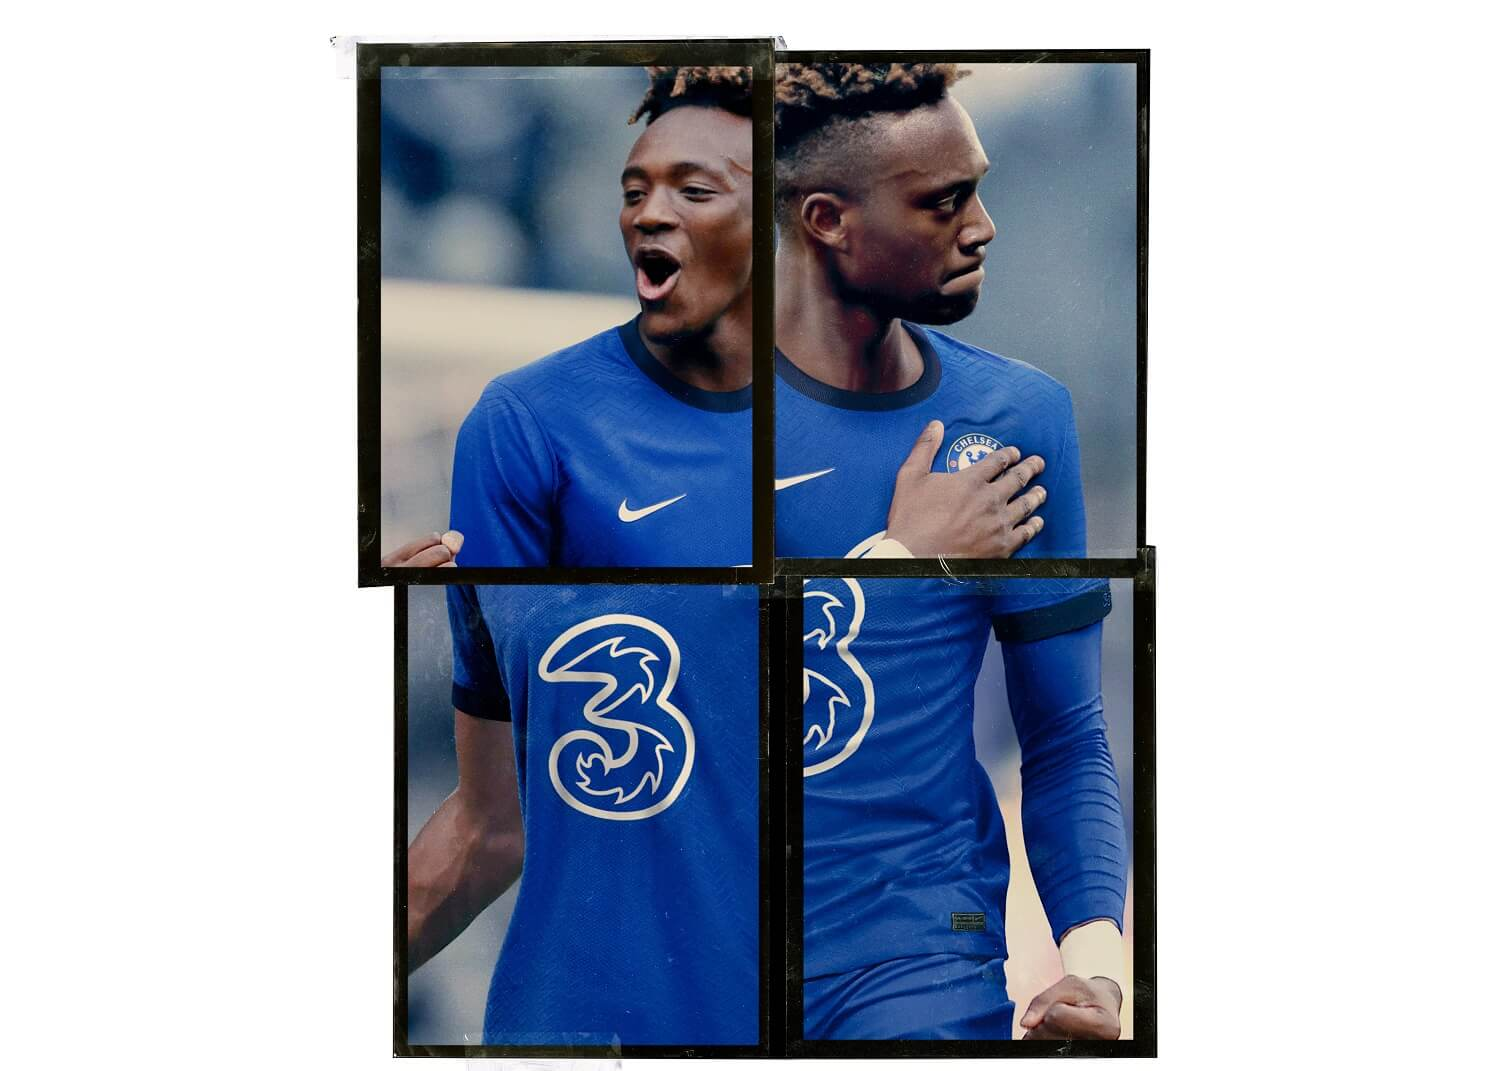 Chelsea 20/21 Home Jersey